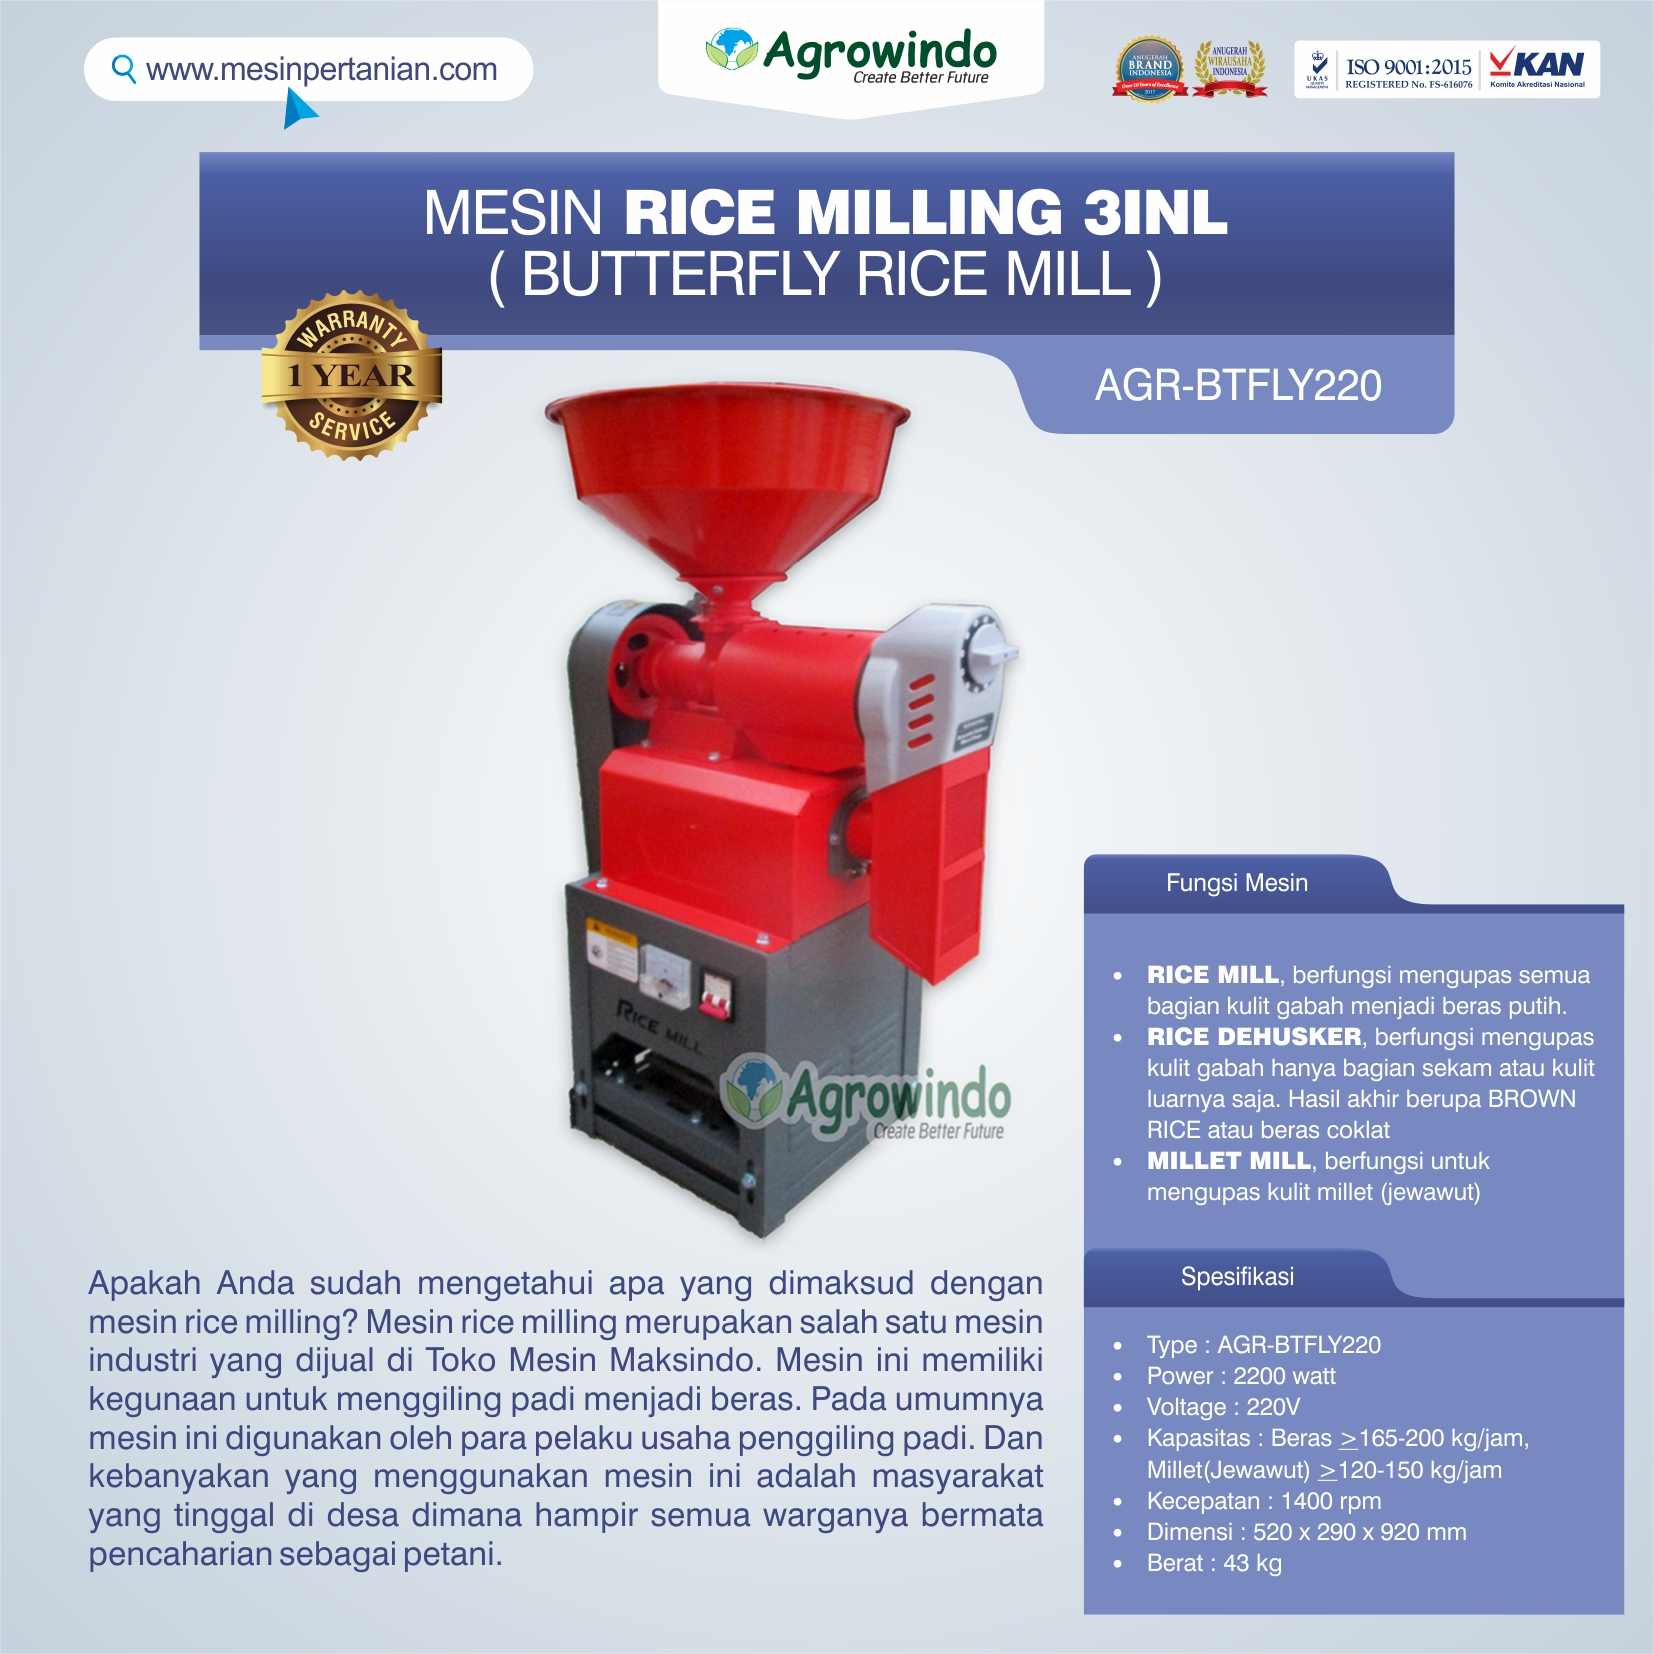 Jual  Mesin Rice Milling 3in1 (Butterfly Rice Mill) AGR-BTFLY220 di Solo